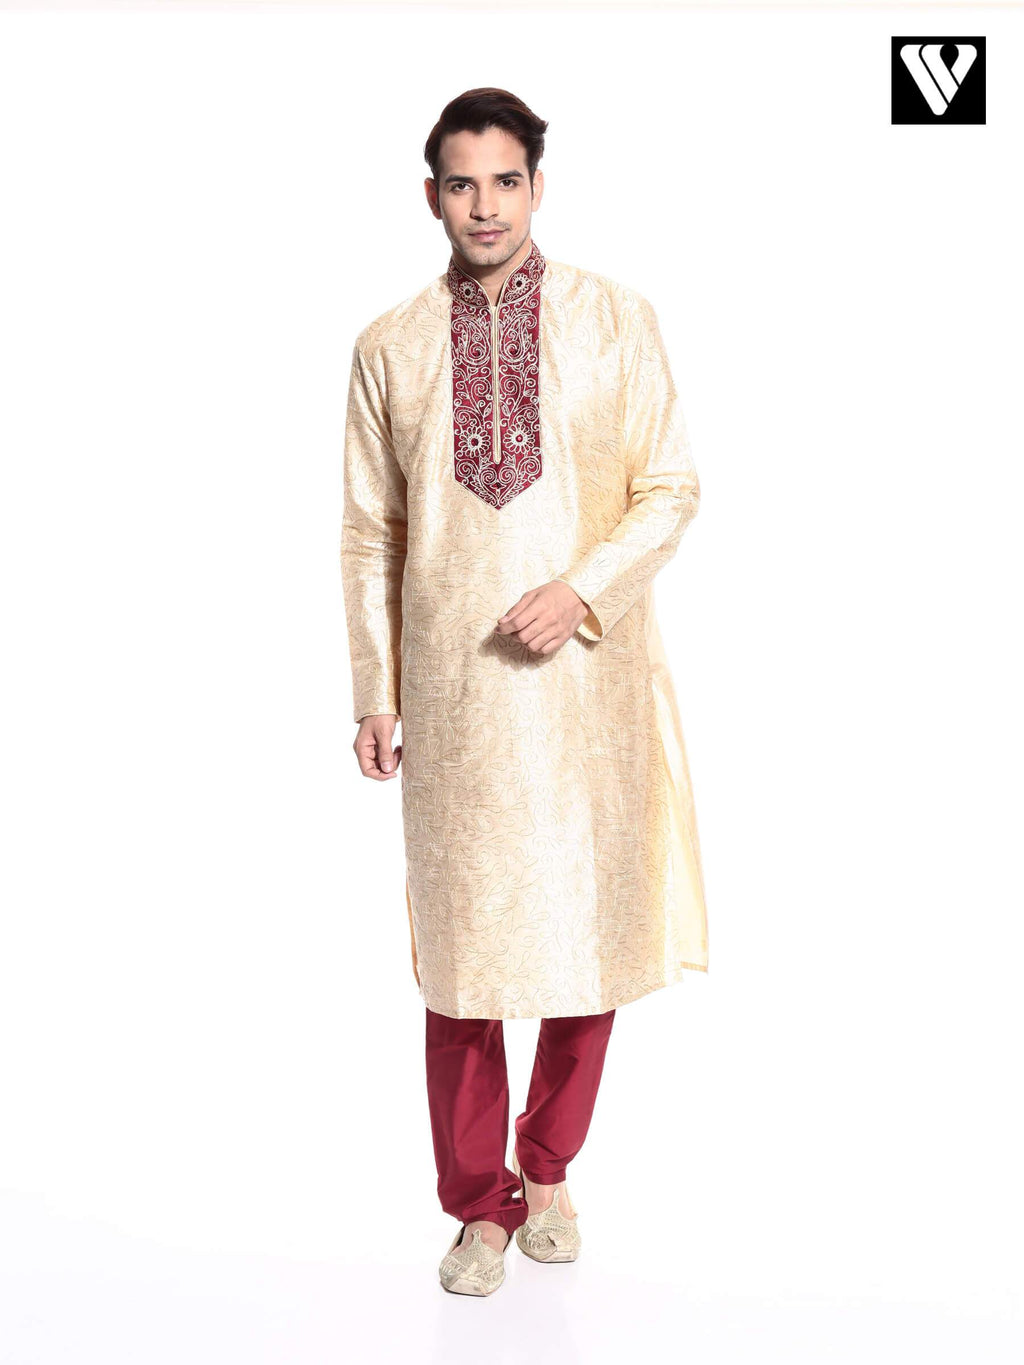 Indian Mens Kurta Payjama in Fawn Color With Dupion Fabric